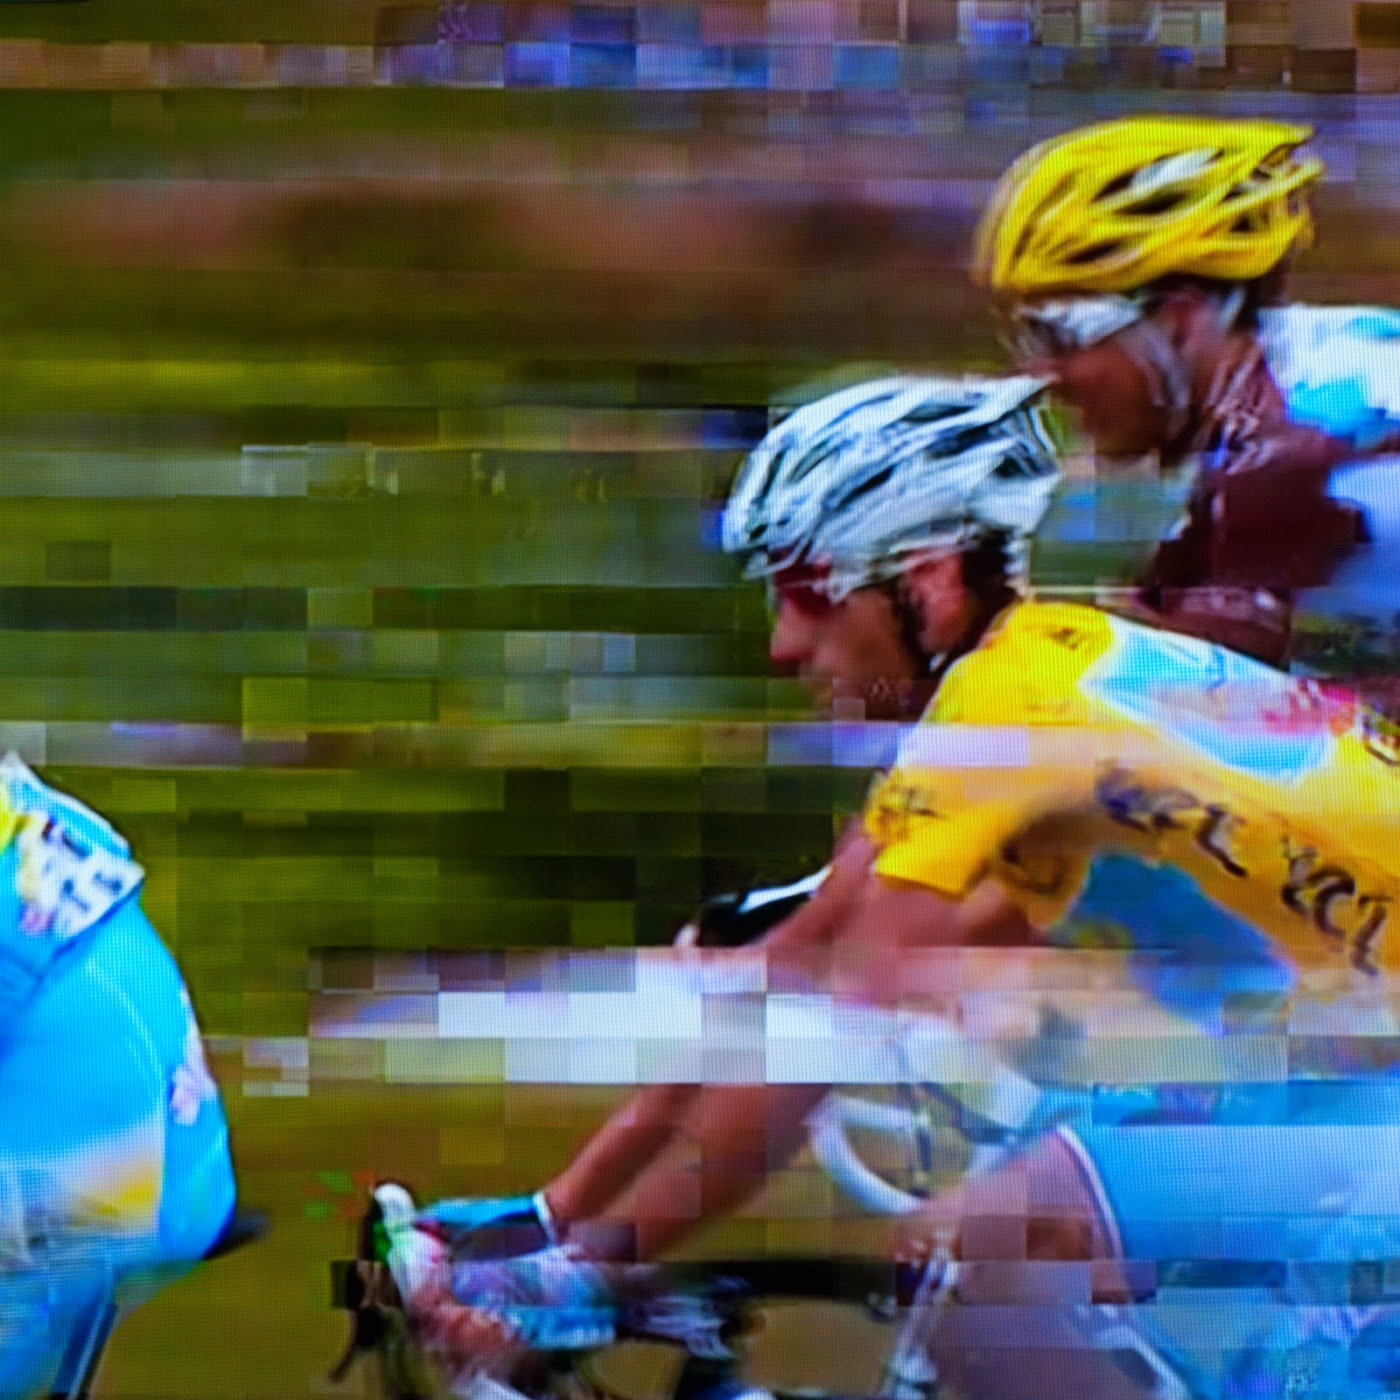 glitch, tim macauley, you won't see this at MoMA, le tour de france, 2014, abstract, abstraction, tv coverage, signal loss, noise to signal ratio, photographic art, graphic, digital, noise, signal, Vincenzo Nibali